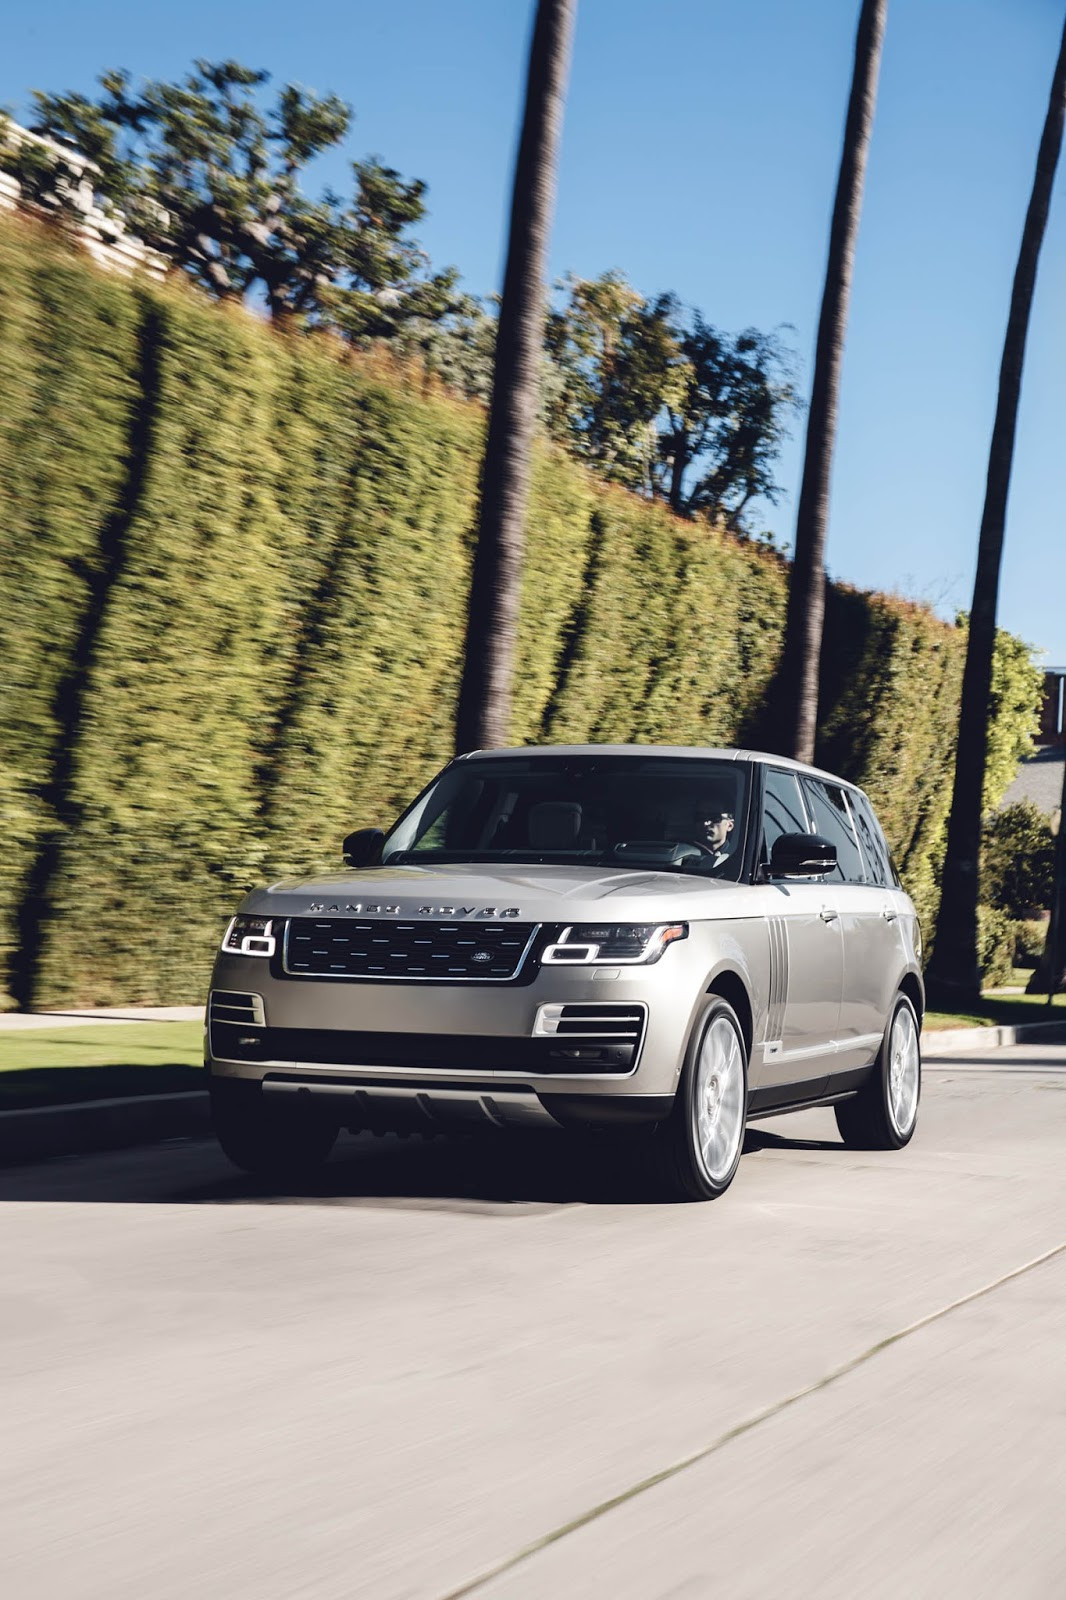 Range Rover Svautobiography Will Cost You Over 200k